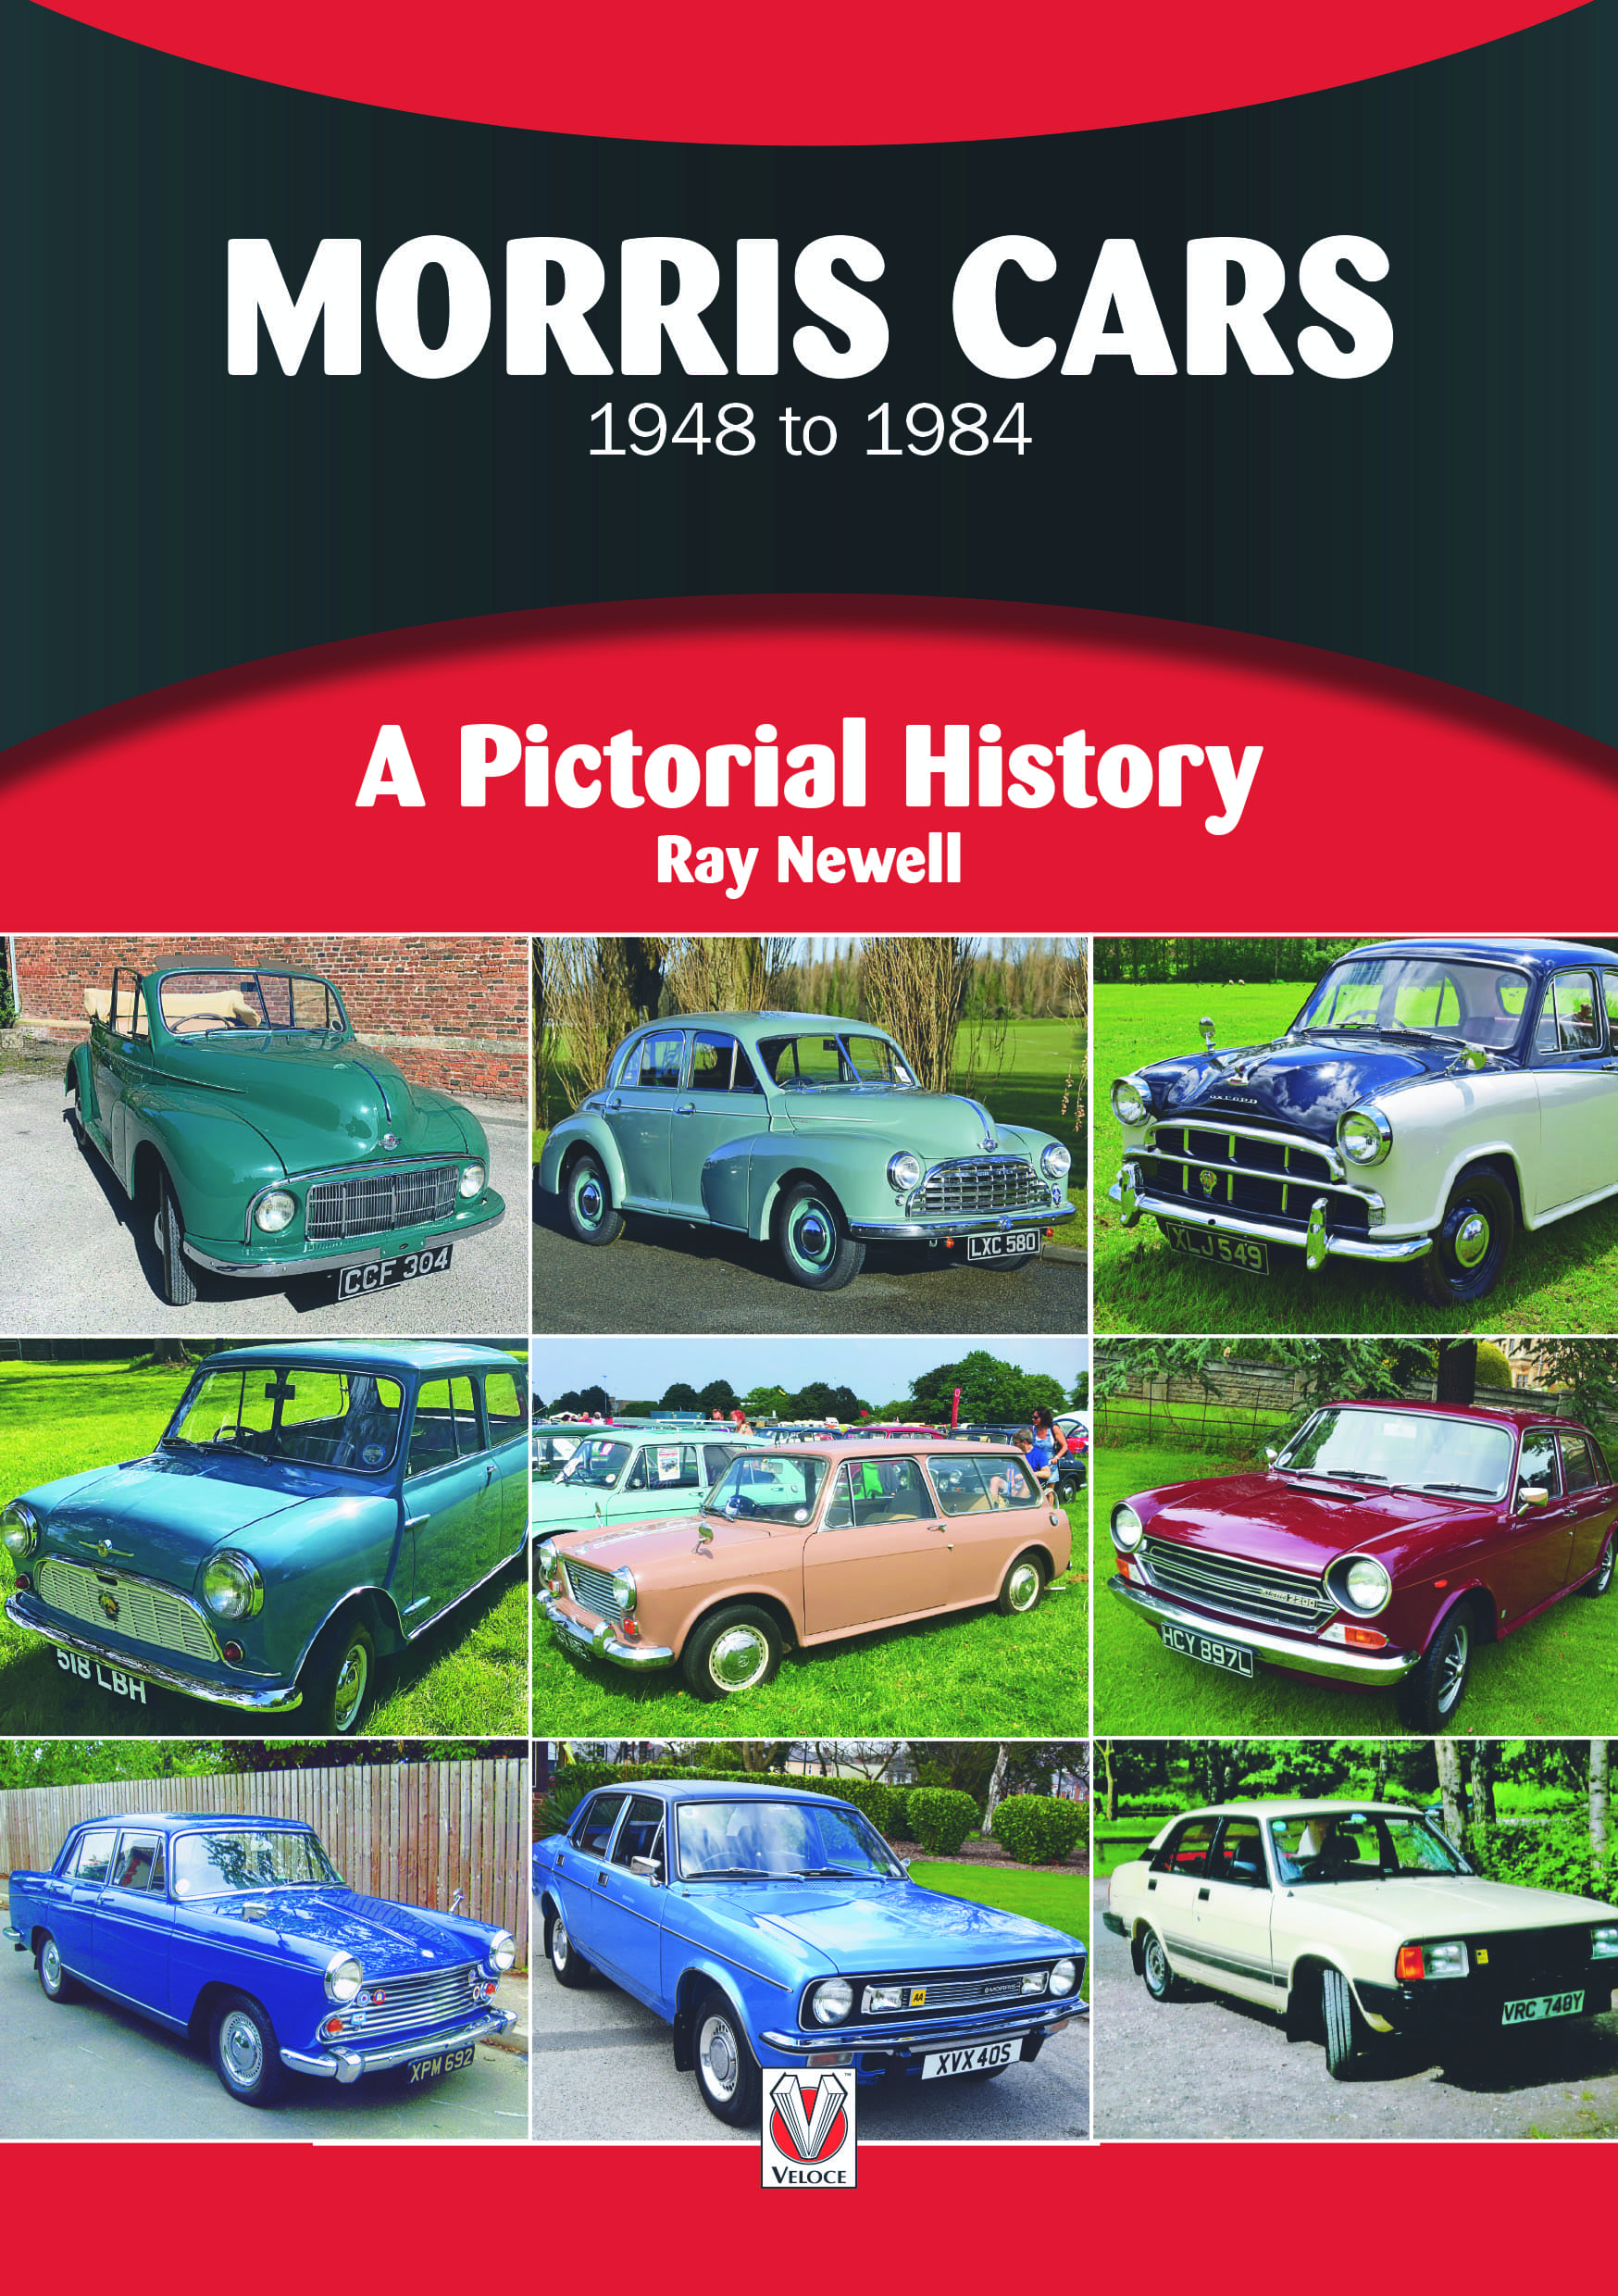 Morris Cars 1948-1984 - A Pictorial History